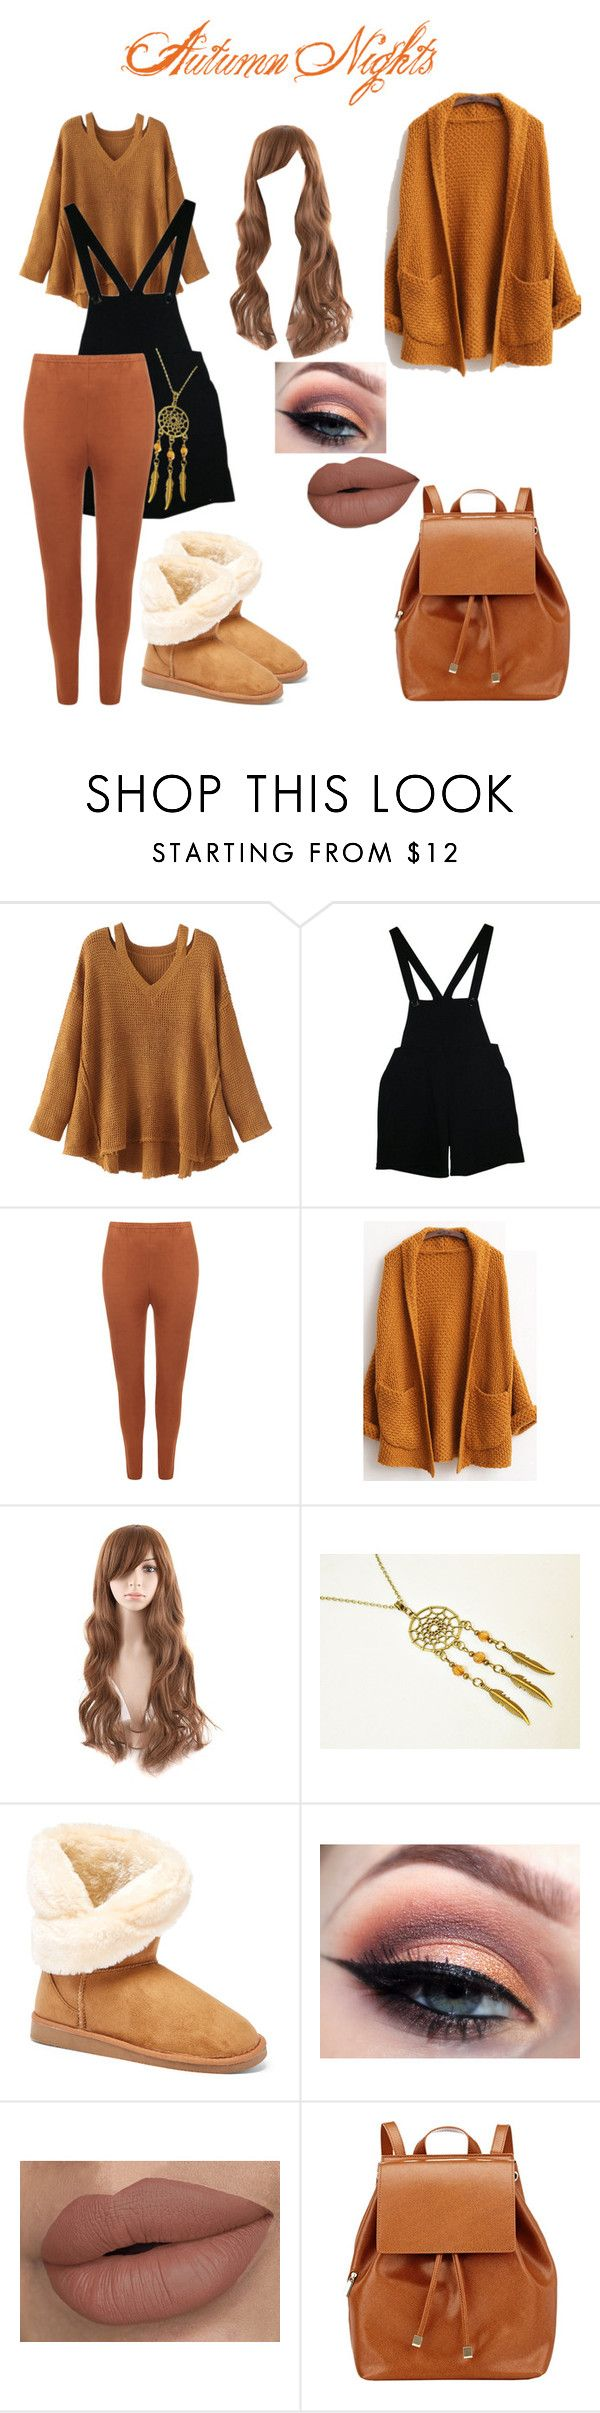 Autumn Nights by just-a-friendly-ghost on Polyvore featuring WithChic, WearAll, American Apparel, Serene Island and Barneys New York